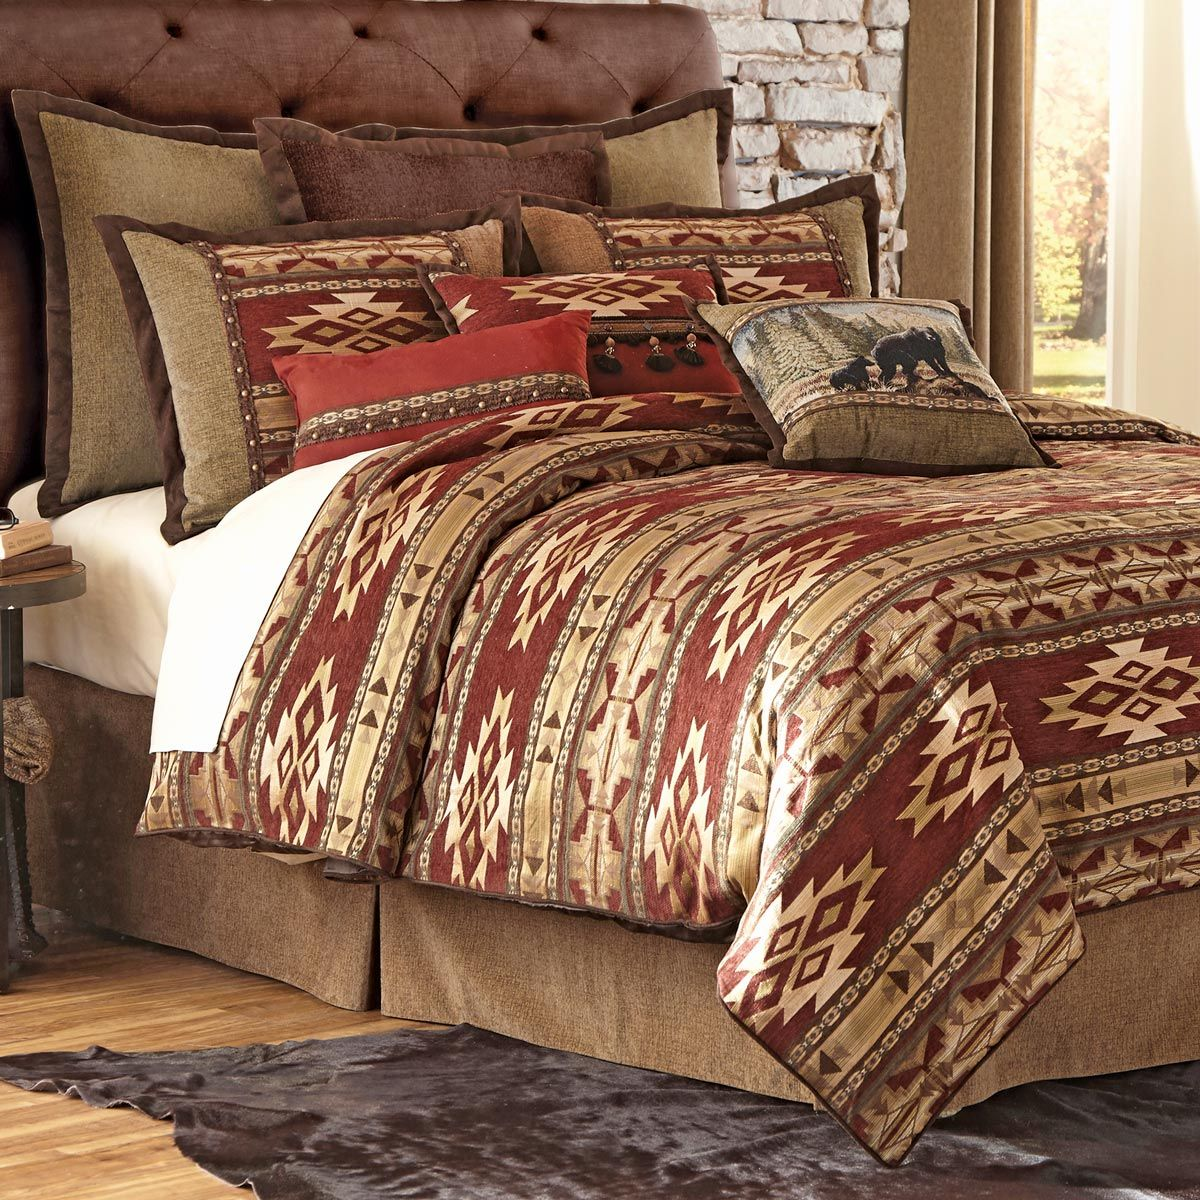 rugs light set colored cheap carpet elegance black ideas for fabric rectangle area sibyl jacquard get buying nature piece brown gold modern rust square polyester comforter bedding buy queen sets to floral lamps king nighstand bedroom white curtains